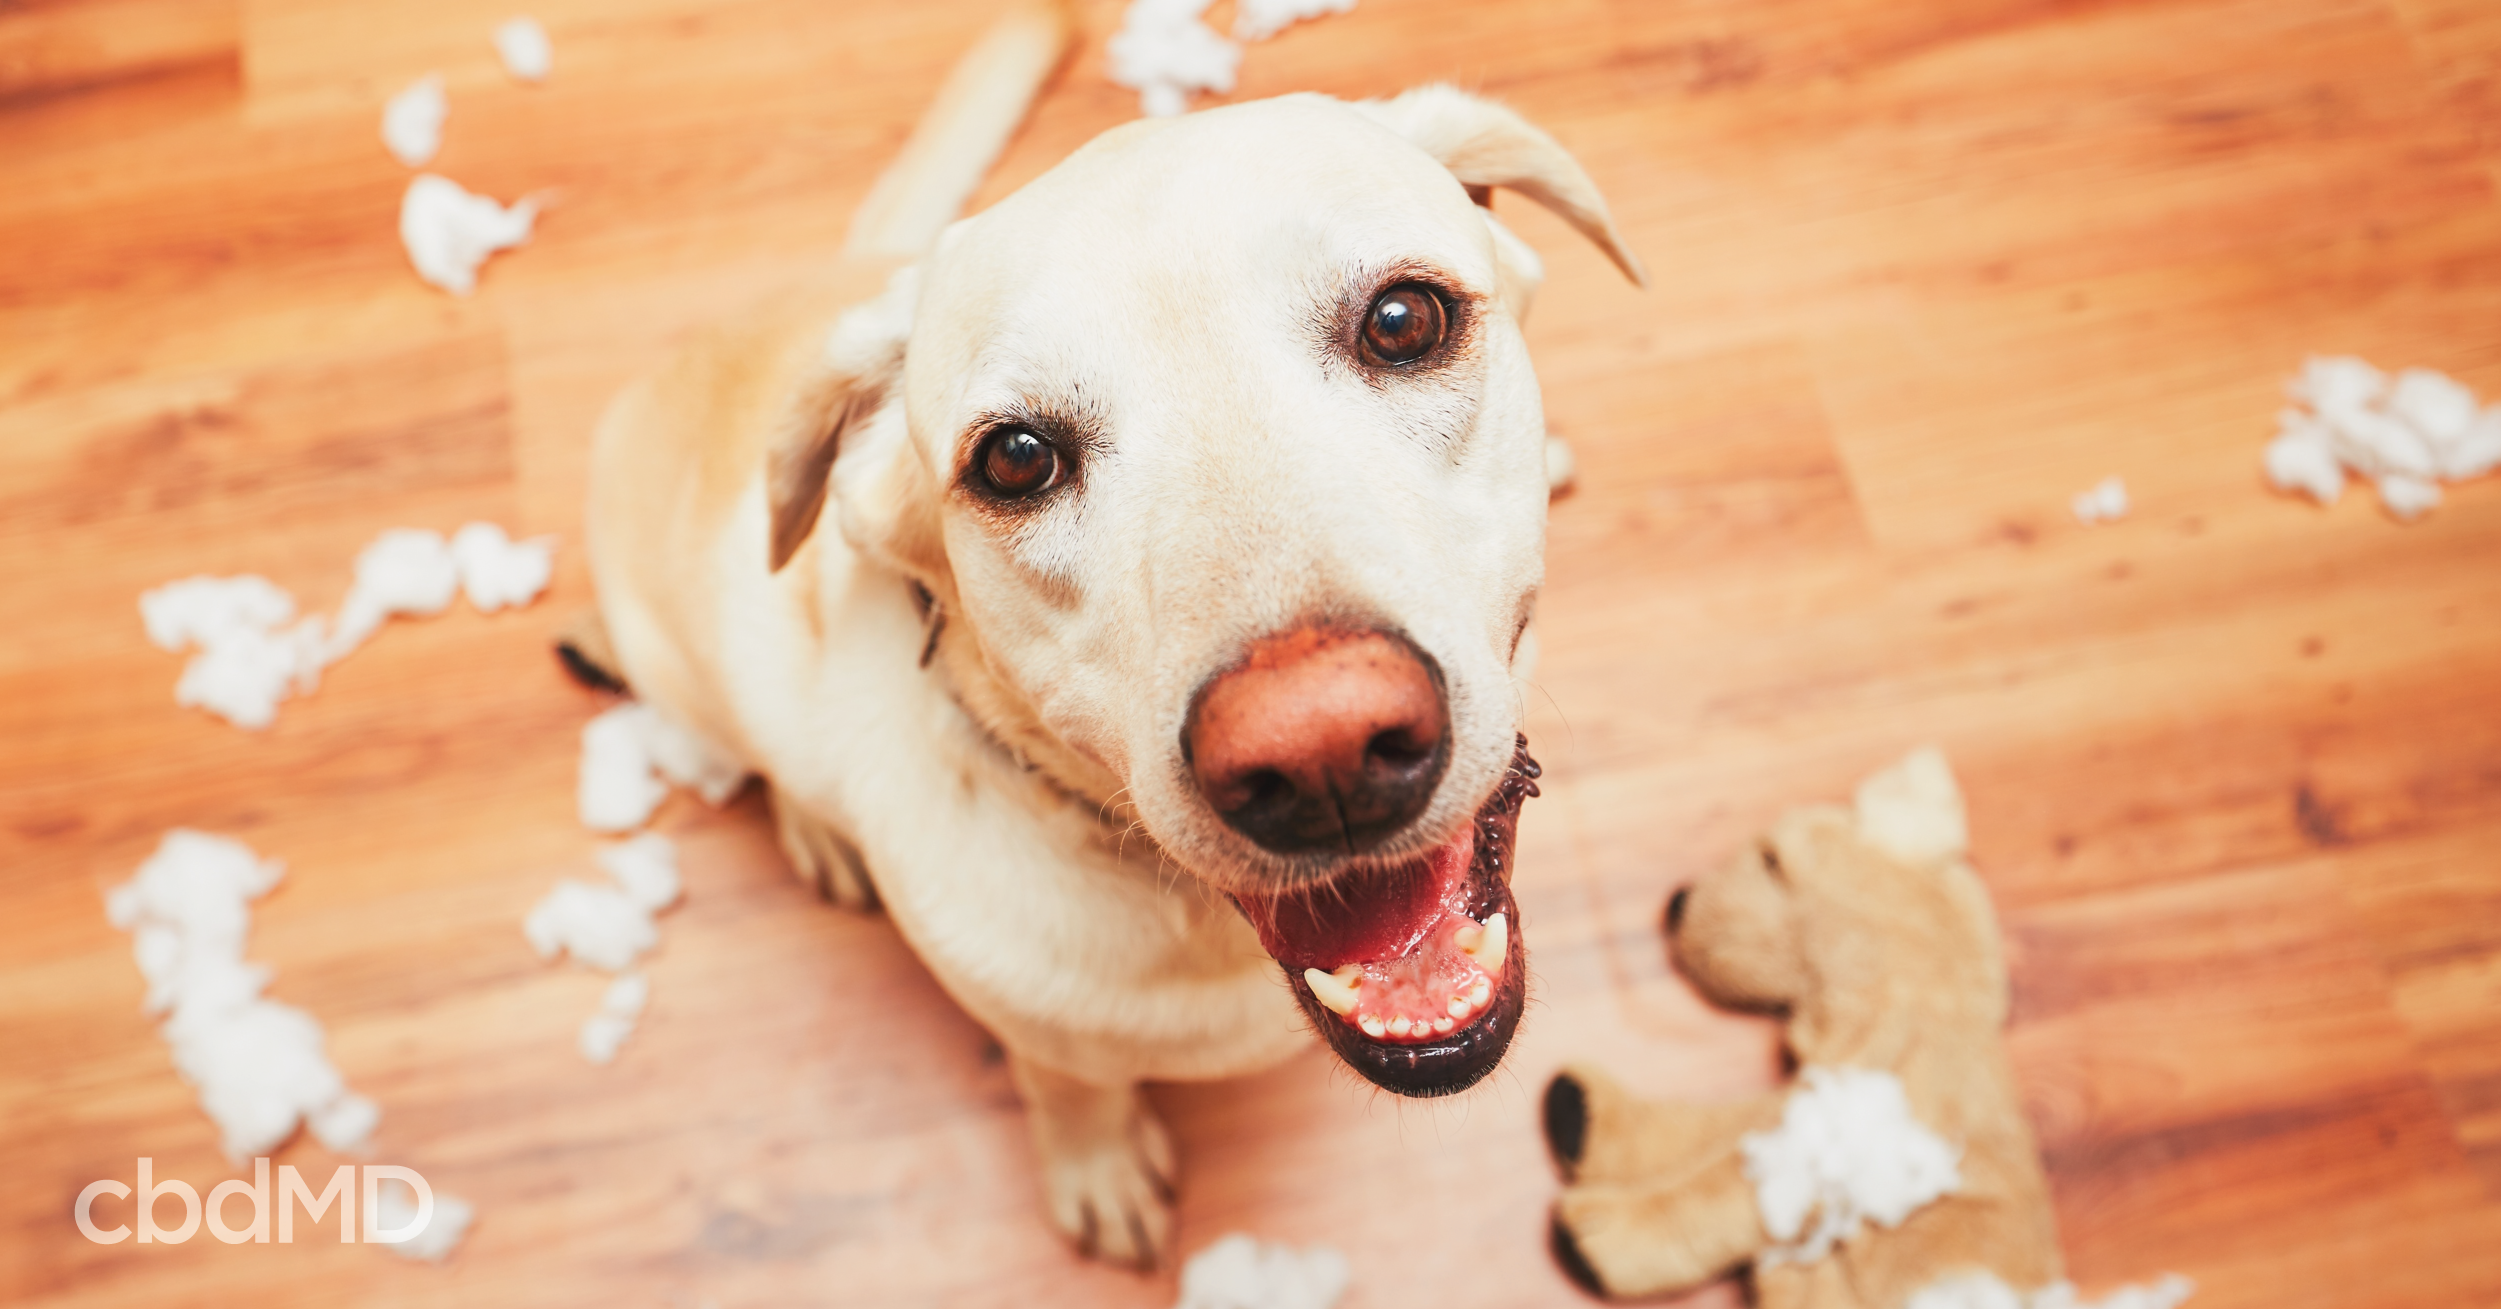 CBD Can Help Calm Your Crazy Pup